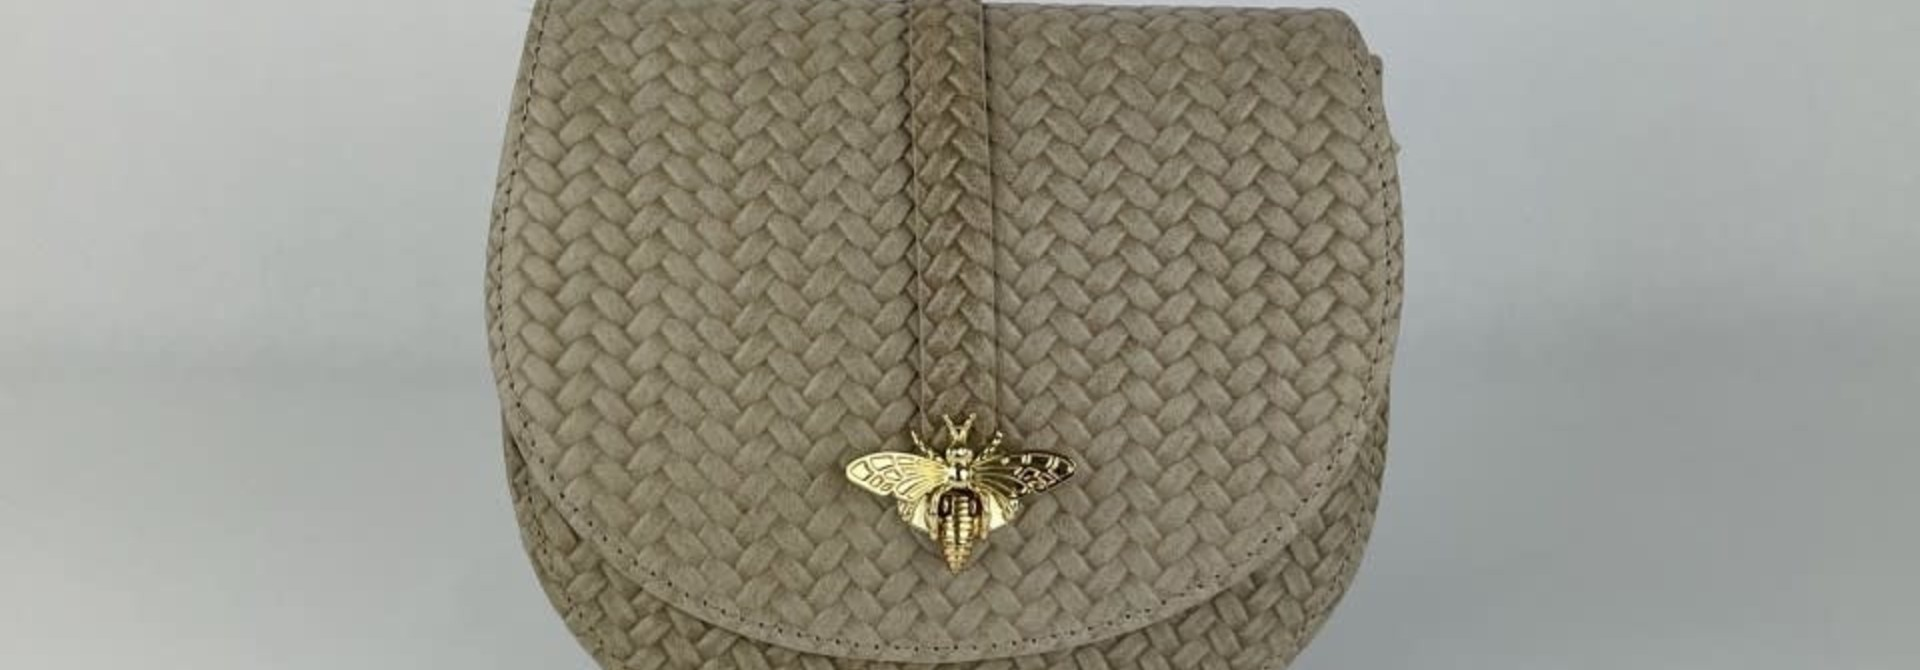 Cléo calf leather dragonfly bag Beige